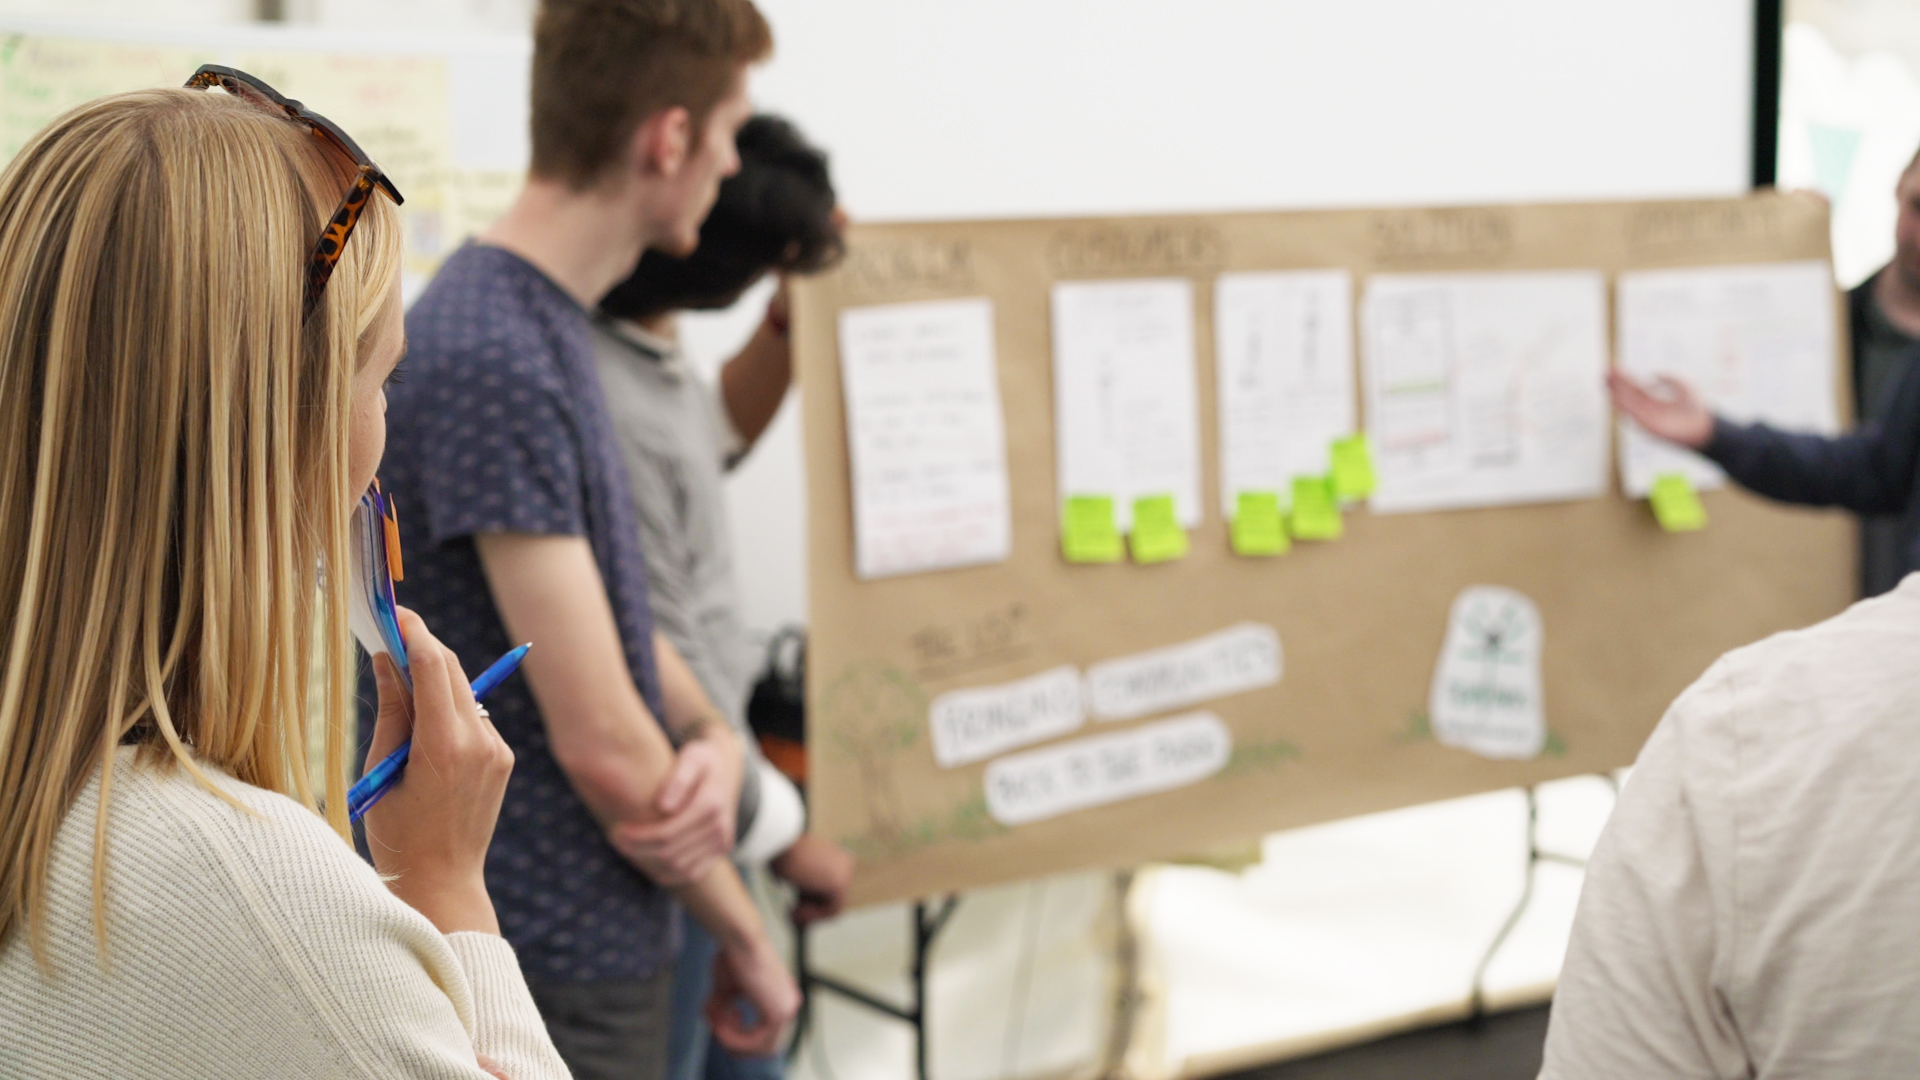 Why faster feedback is important for startups